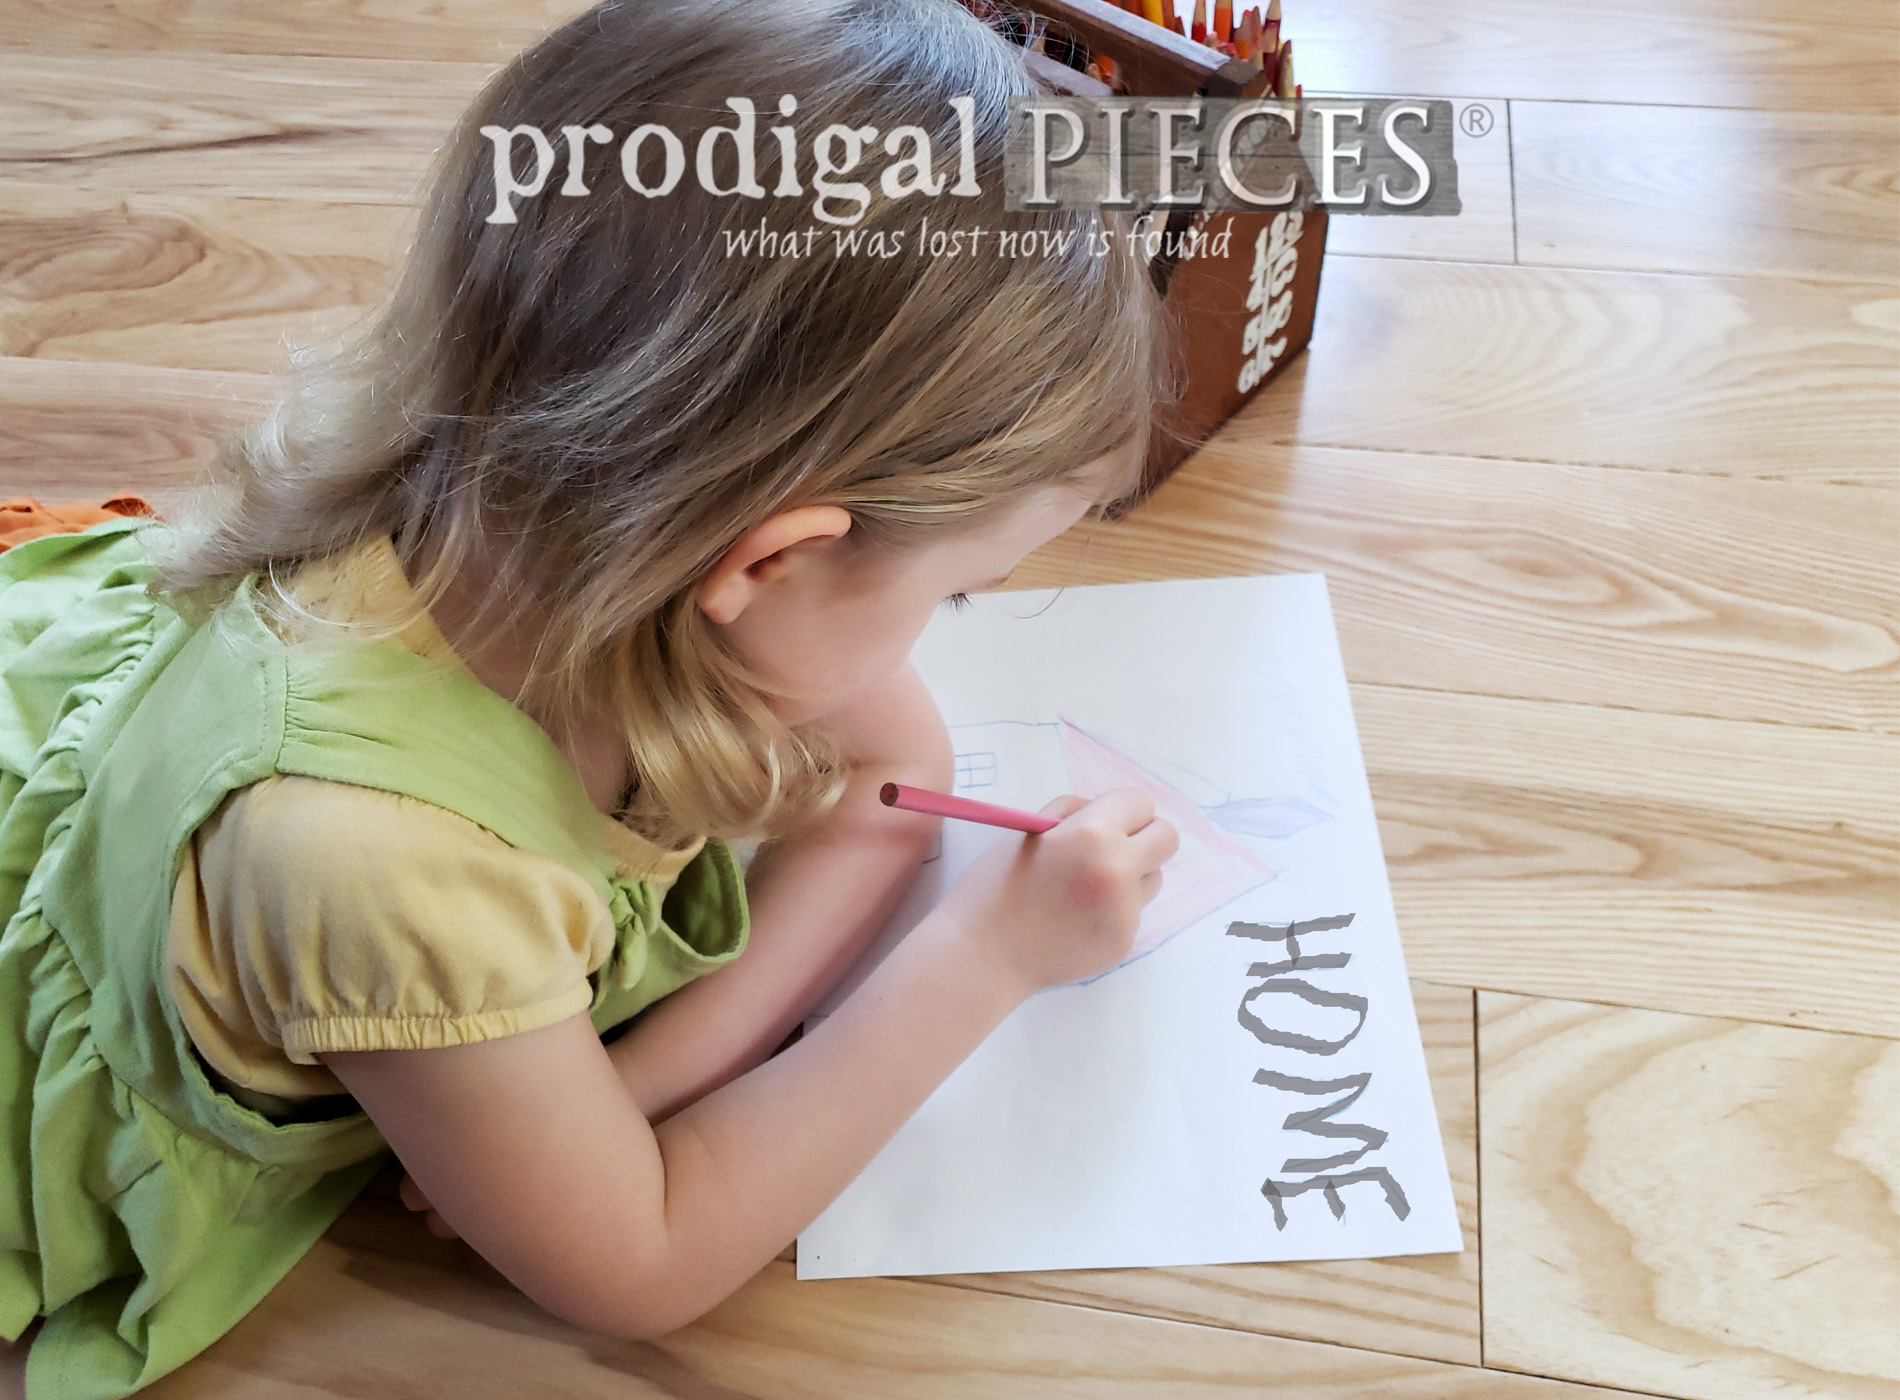 Featured Home is the Key Campaign for Habitat for Humanity | Visit prodigalpieces.com #prodigalpieces #home #homeisthekey #habitatforhumanity